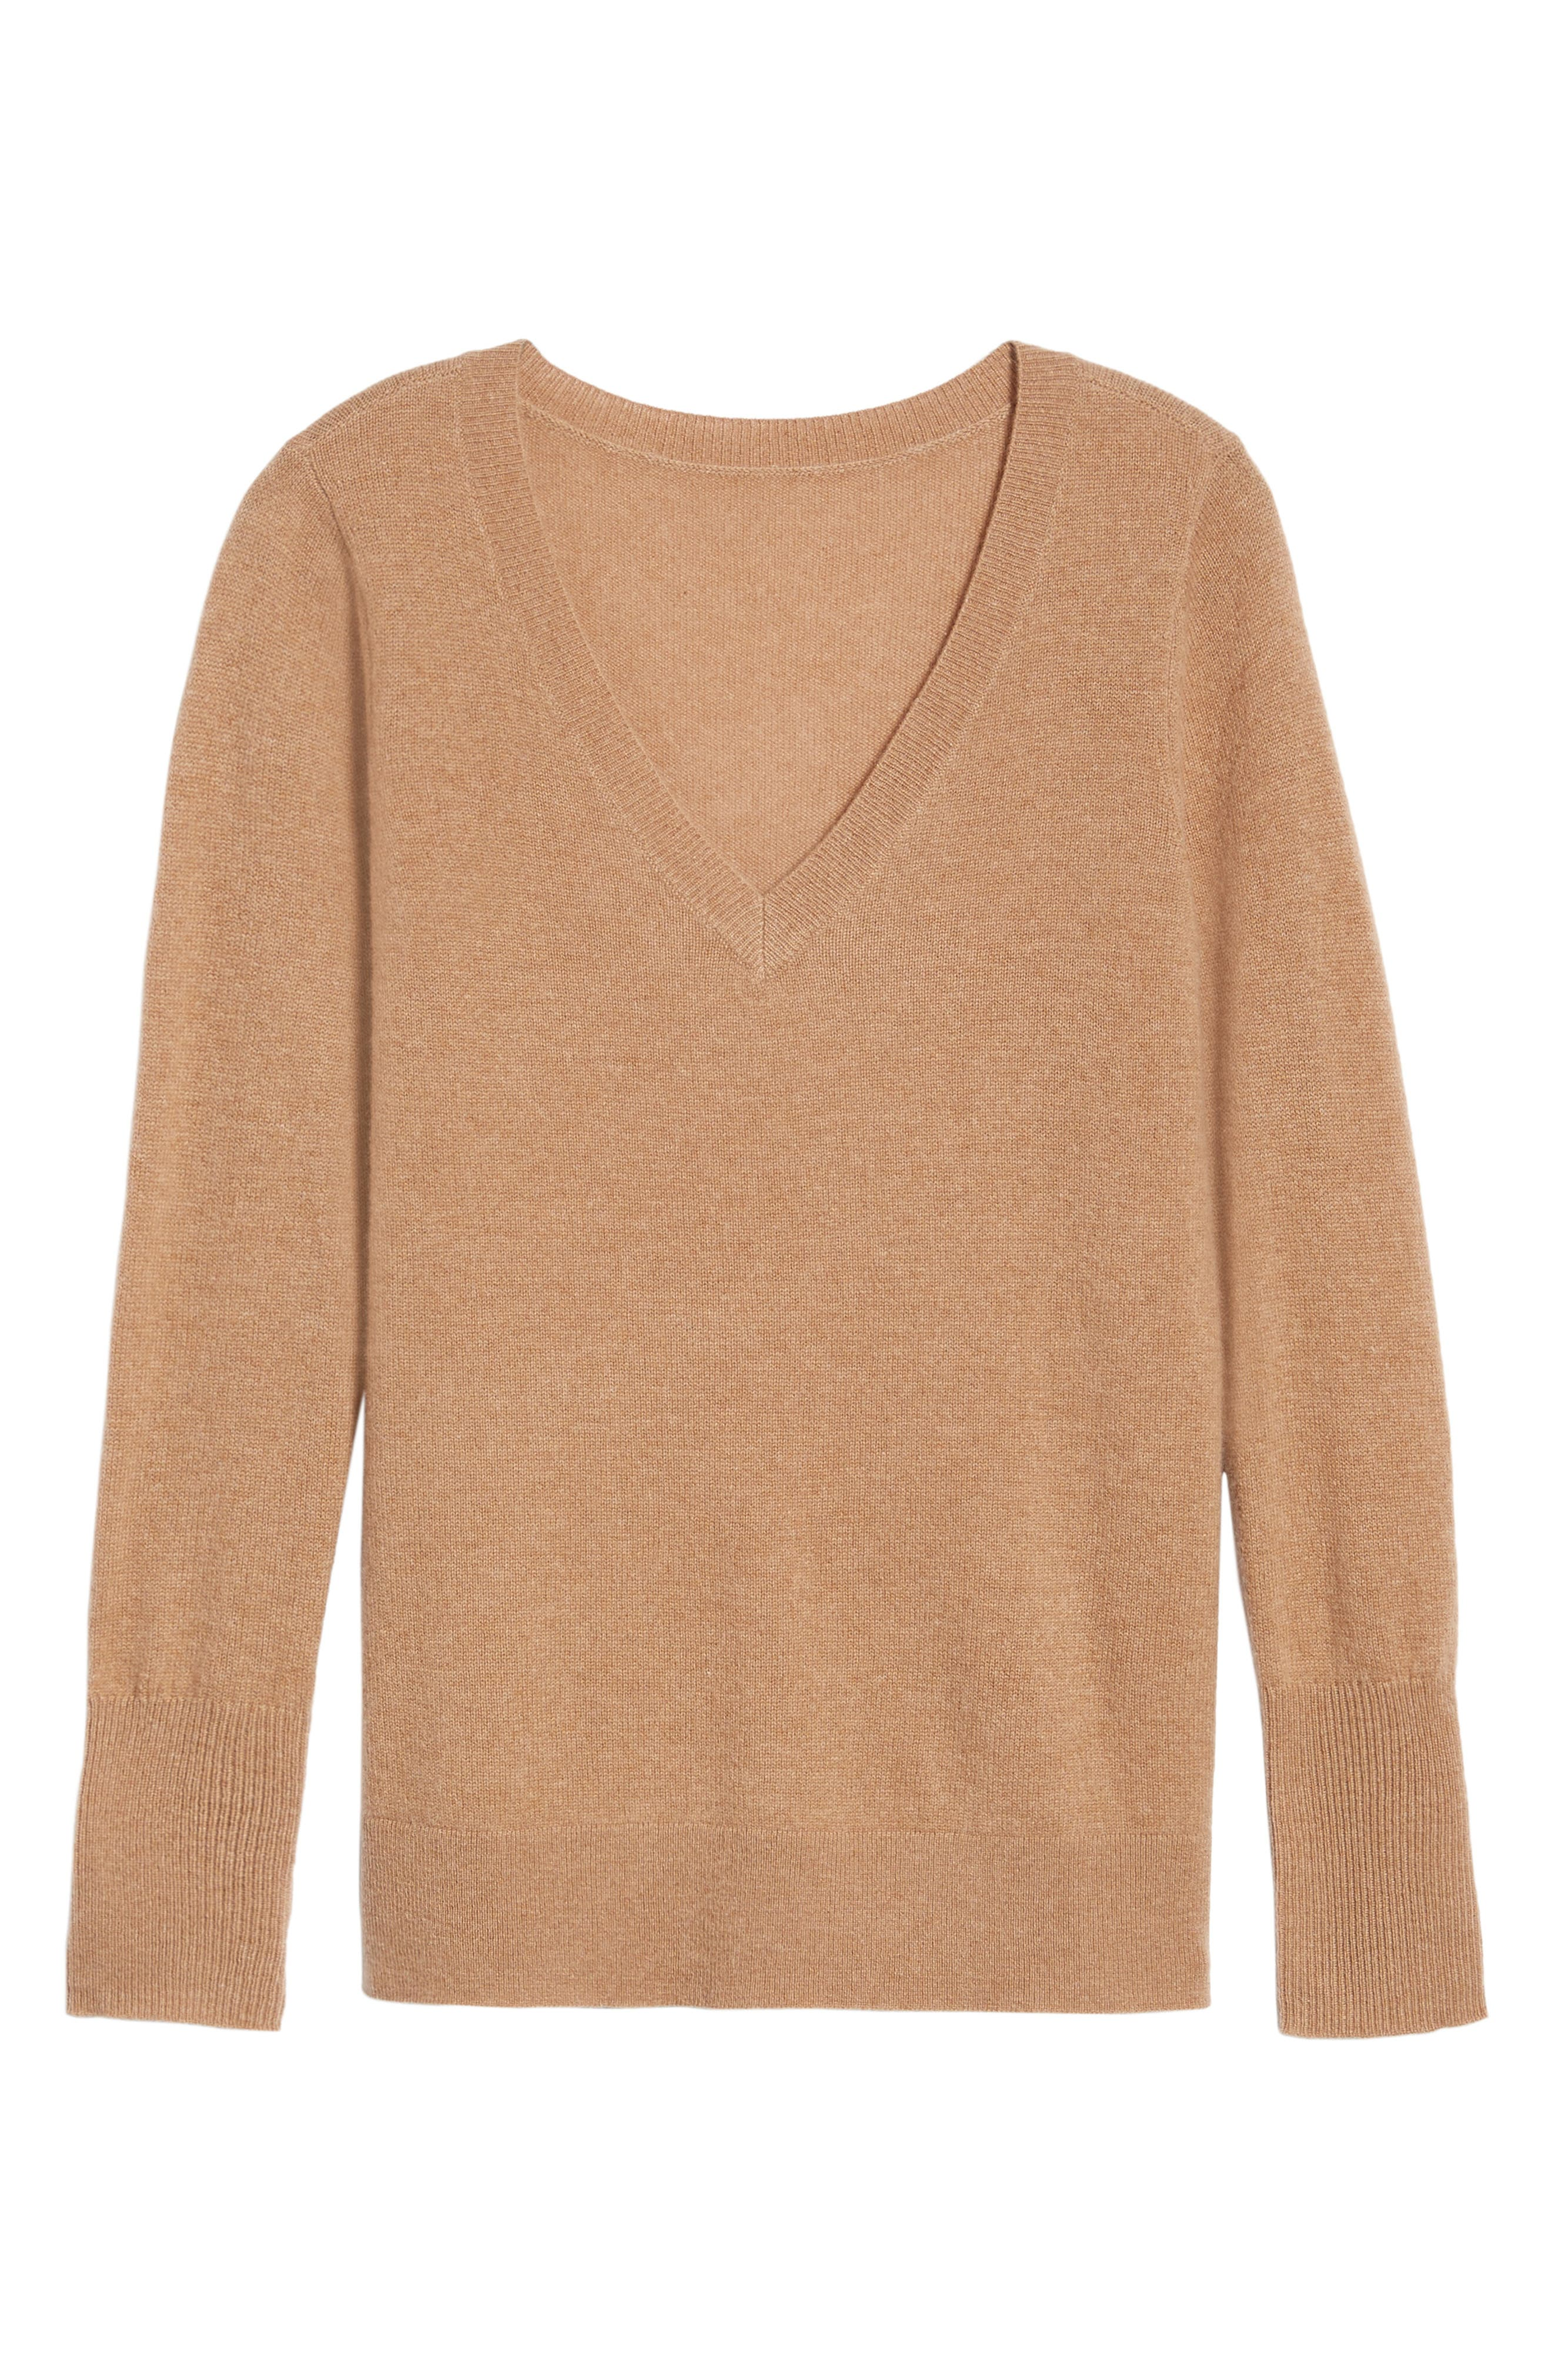 V-Neck Cashmere Sweater,                             Alternate thumbnail 89, color,